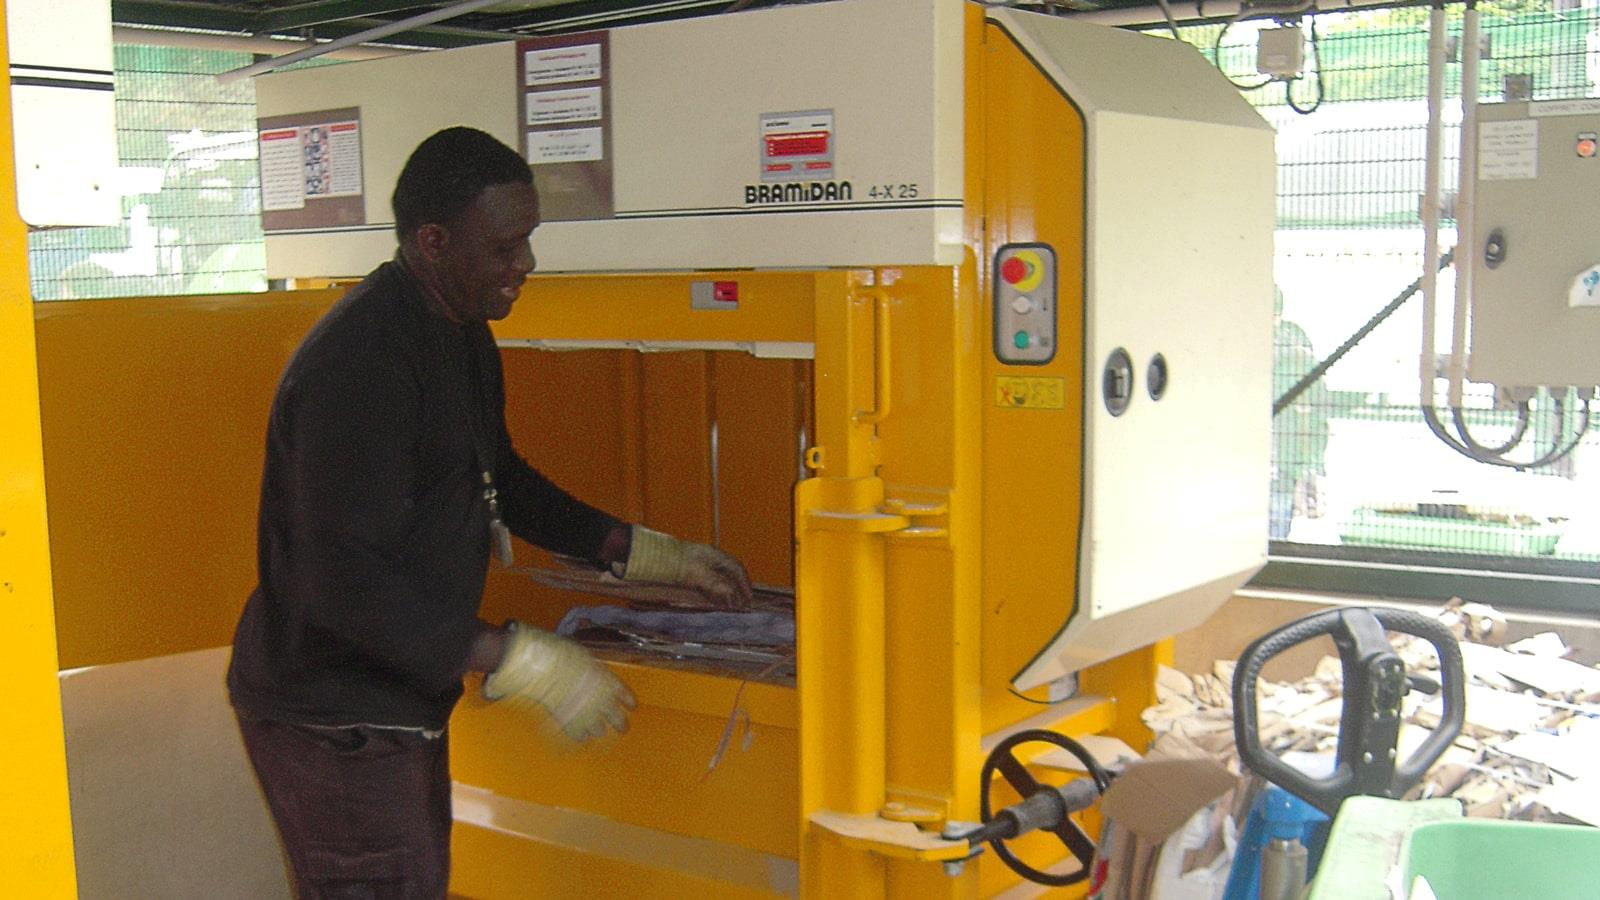 Employee with gloves fills cardboard waste into baler